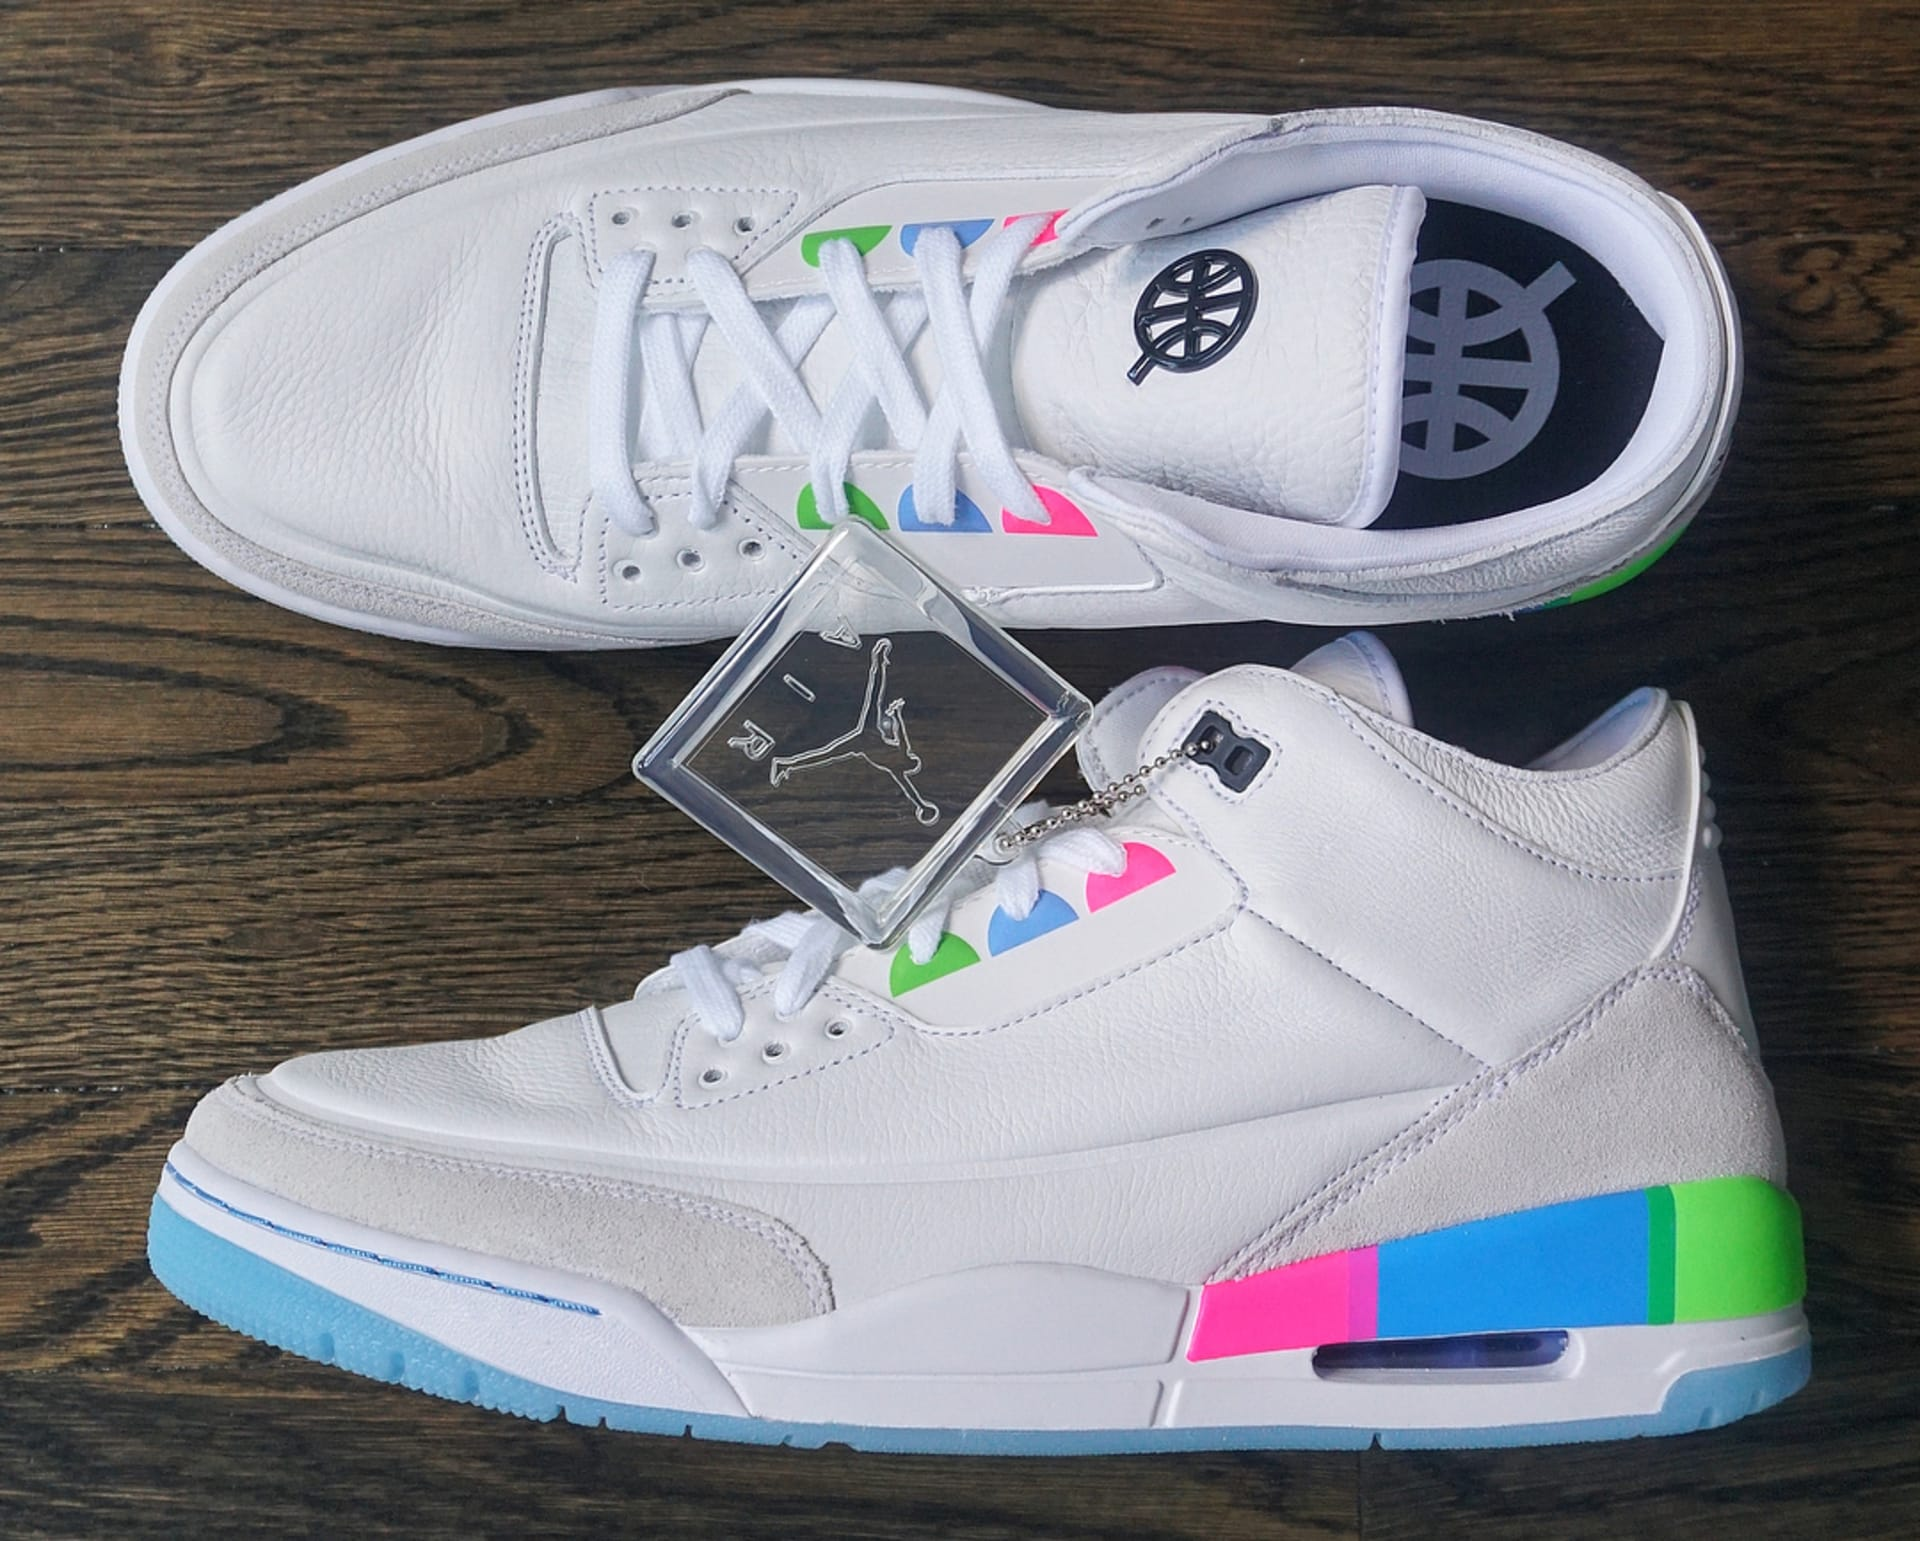 3acf7bfb4ecffa Air Jordan III Retro Quai54 2018 (Friends and Family)